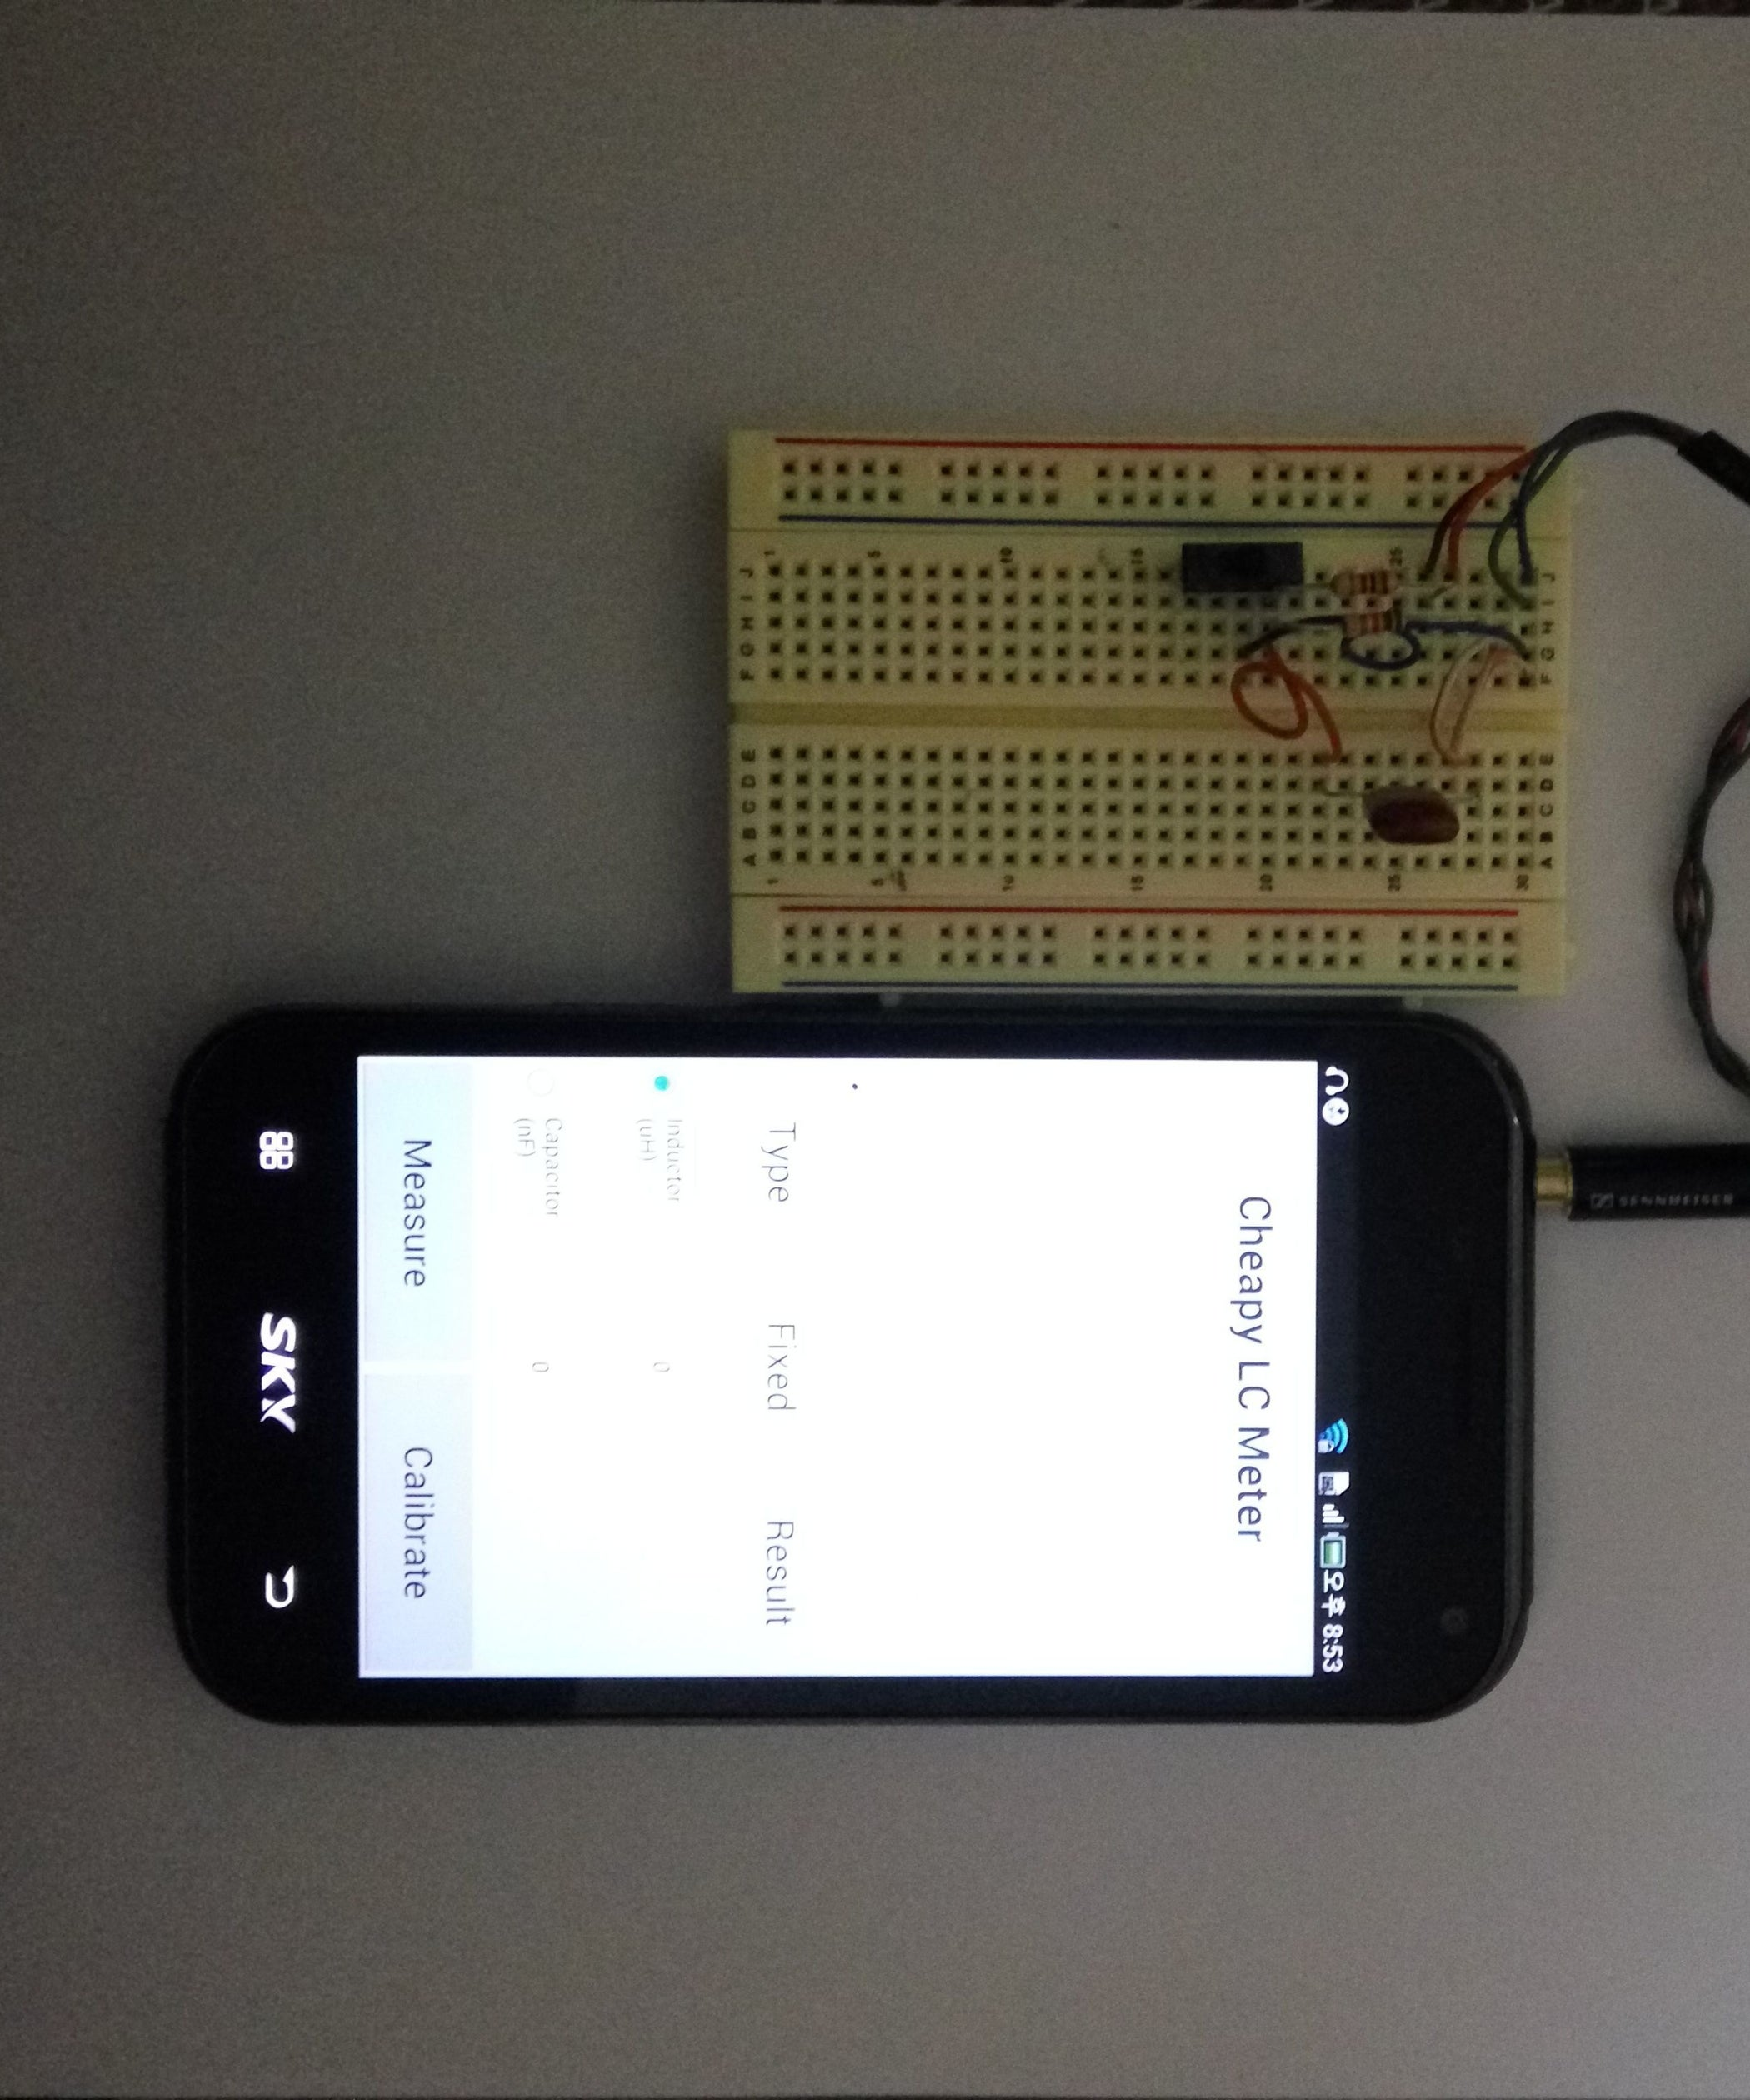 Simple And Useful Lc Meter Using Android Application 4 Steps Based On Pic16f84a